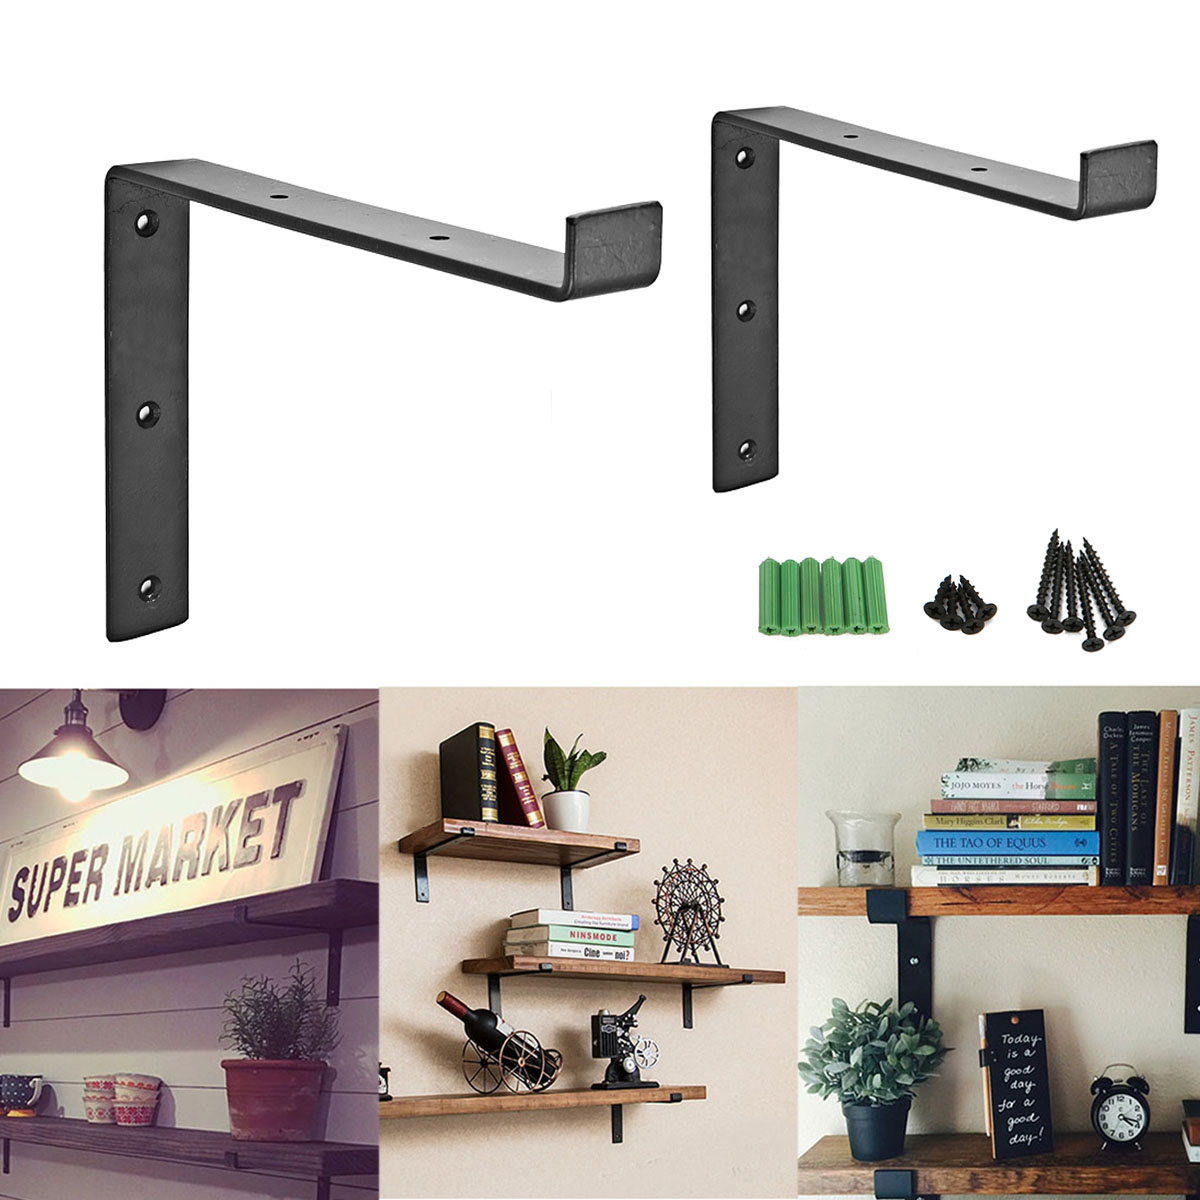 other diy tools pack shape handcrafted forged floating shelf brackets black iron industrial decorative wall desktop bookcases audio video over desk bookshelf hidden compartment